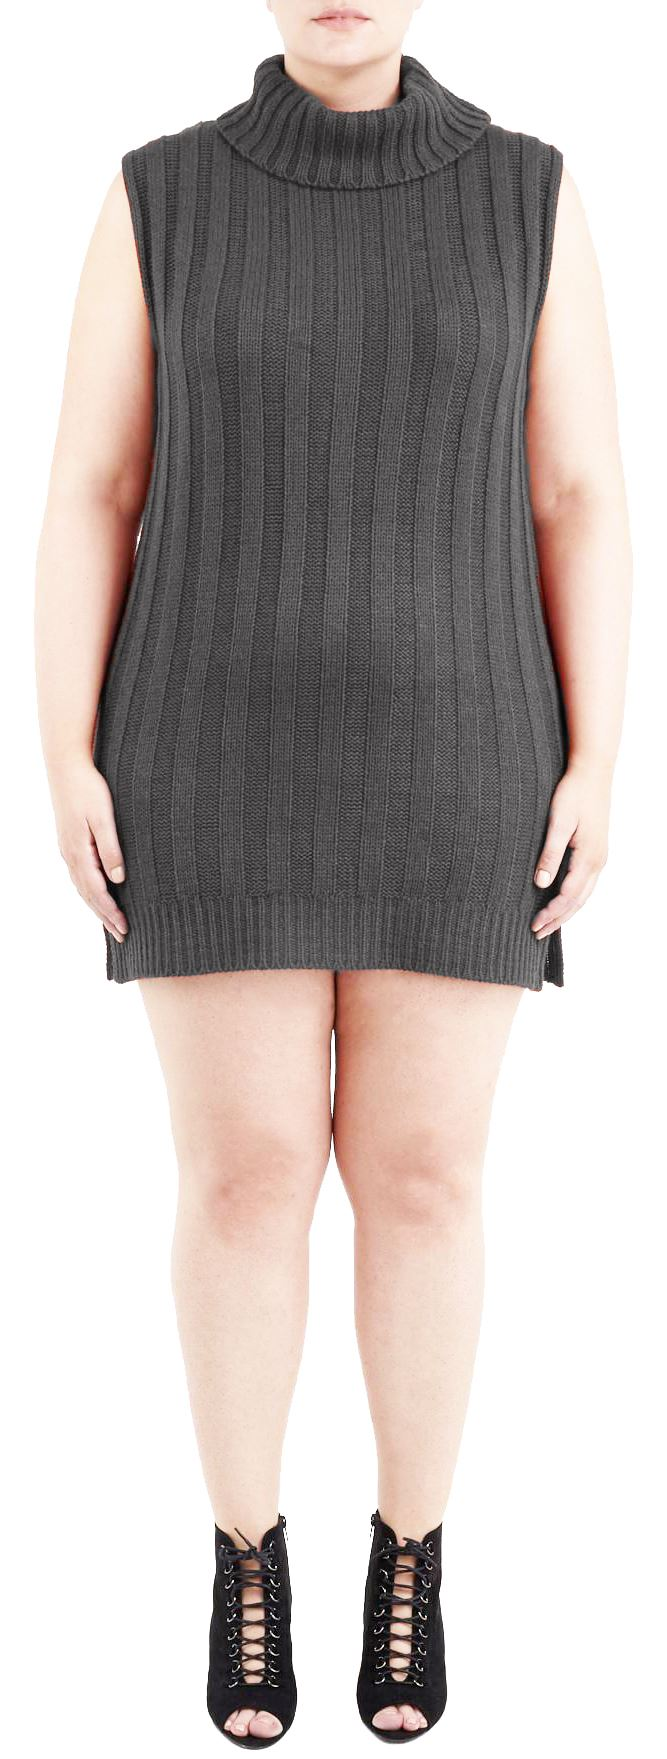 Womens Plus Size Turtle Neck Sleeveless Knit Pullover Jumper Dress ...